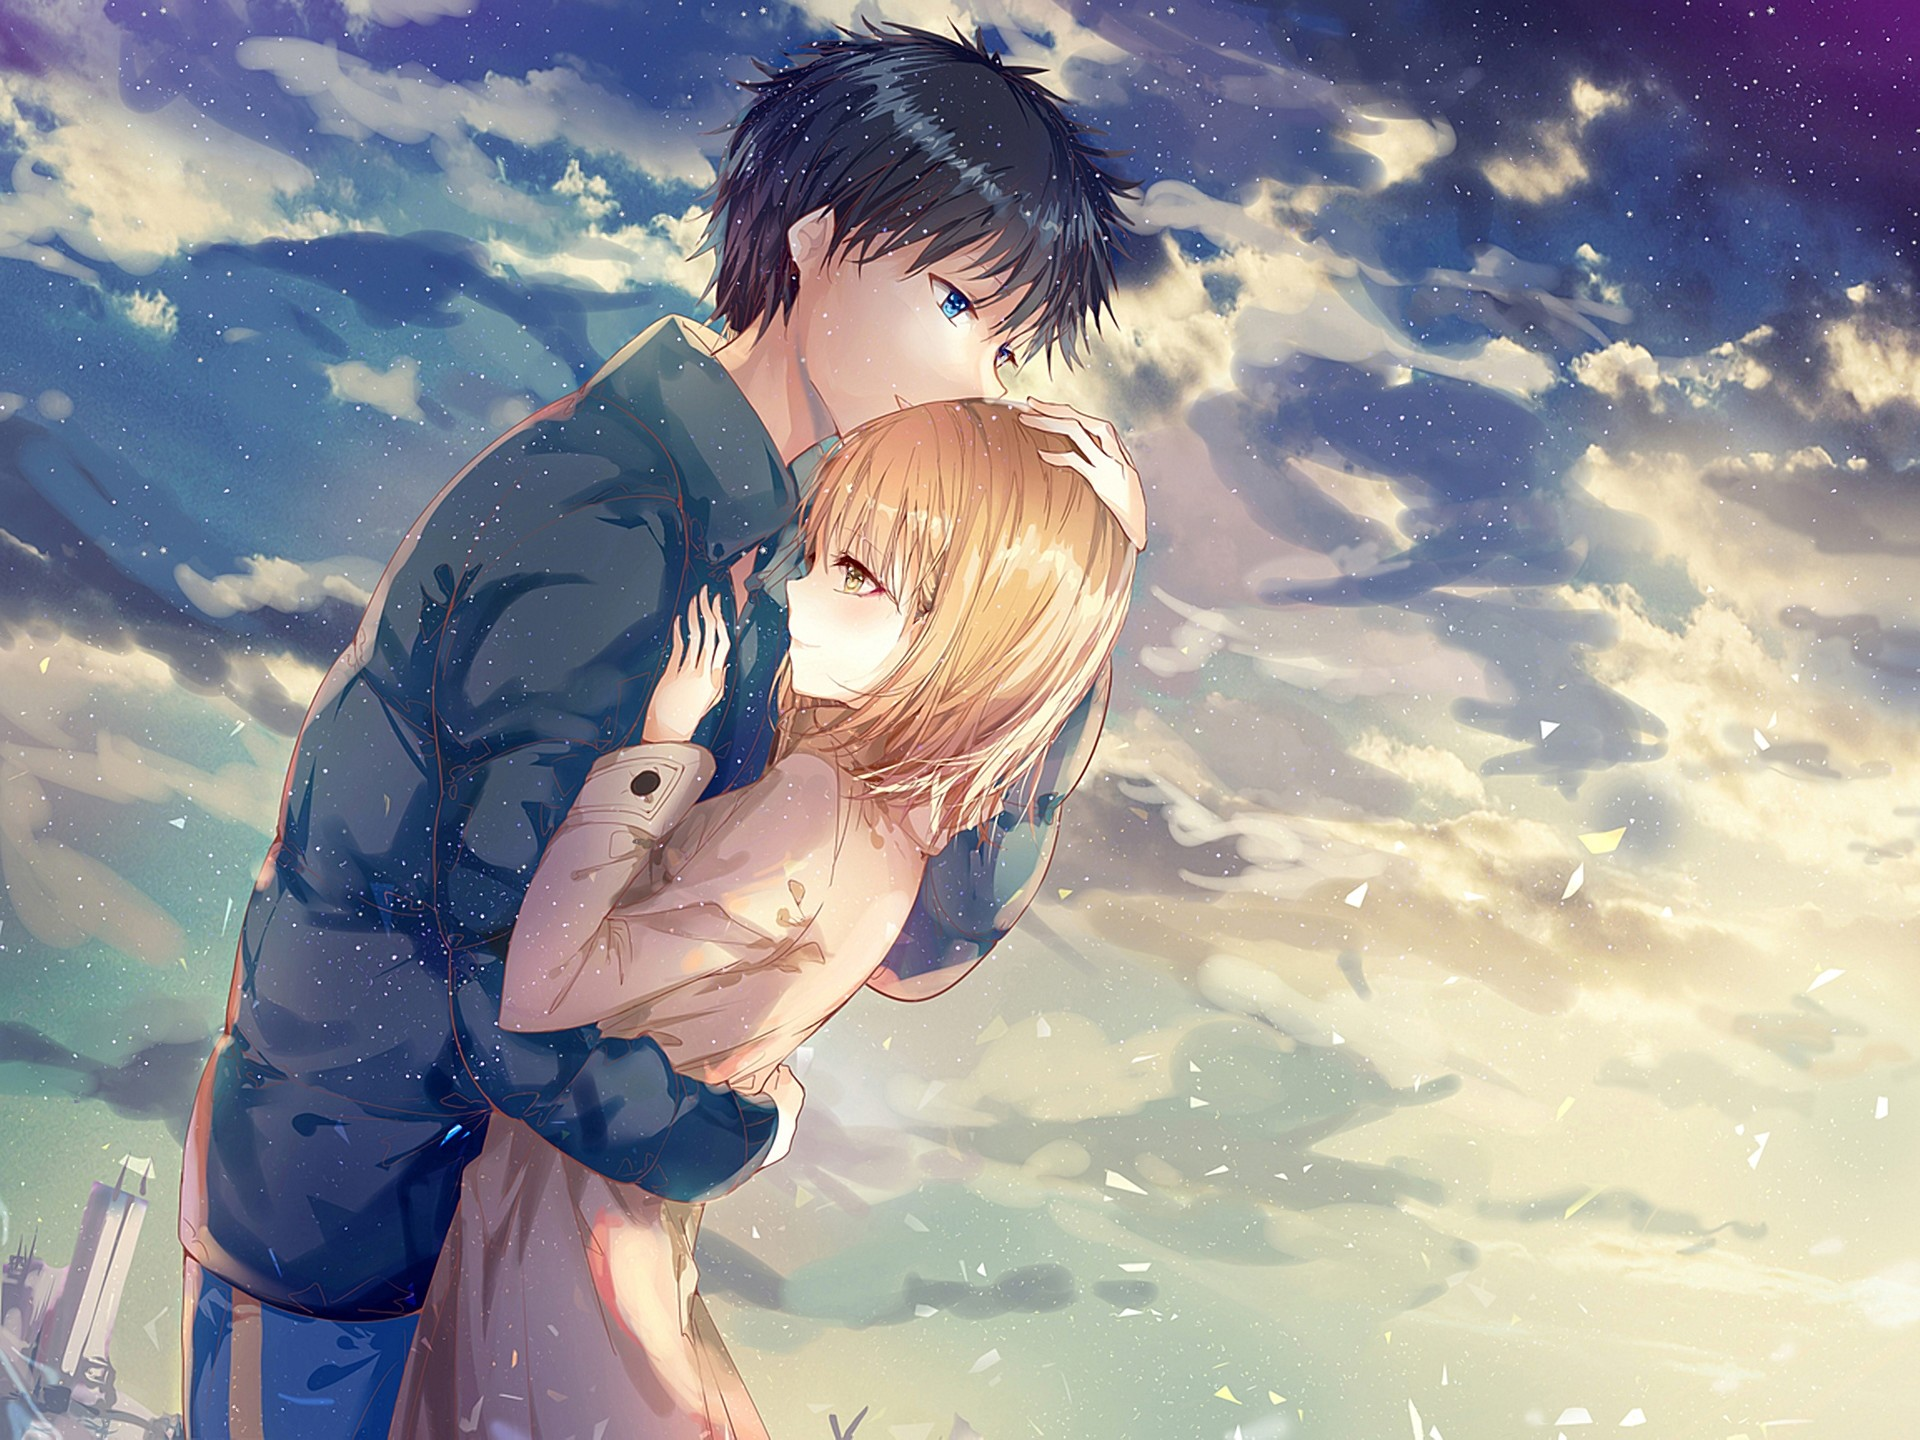 1920x1440  - anime couple, hug, romance, clouds, scenic # original resolution